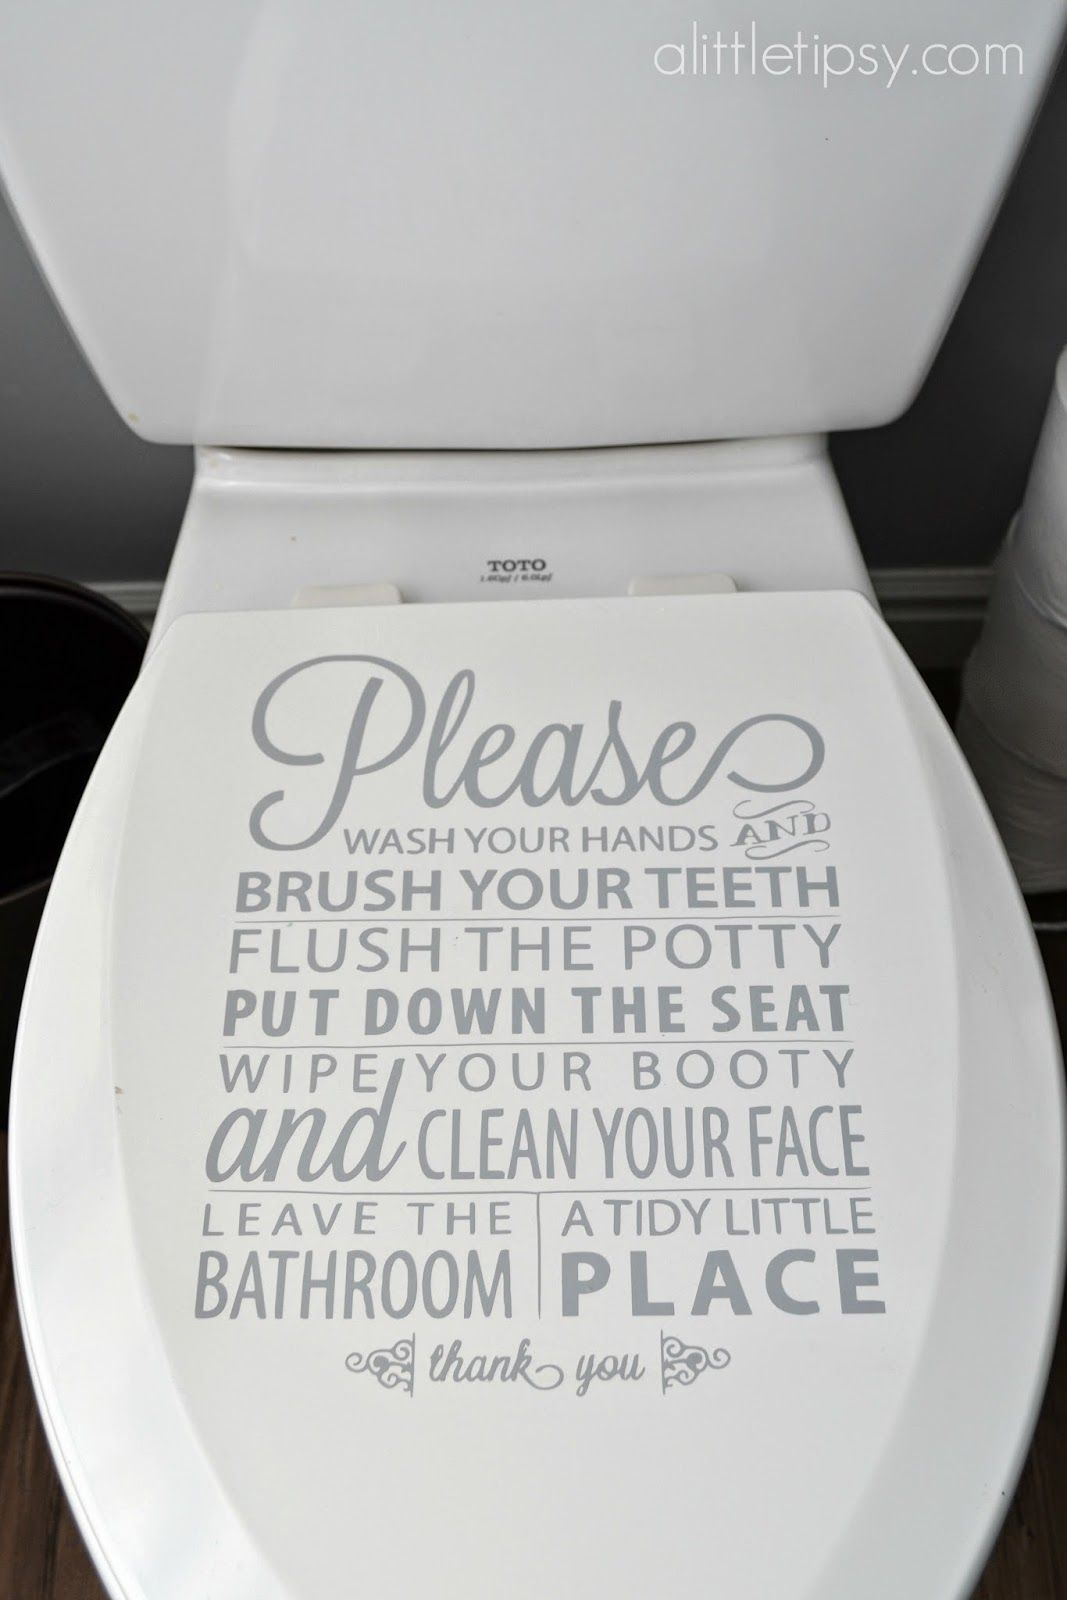 Bathroom Rules On The Toilet Lid A Little Tipsy Bathroom Rules Bathroom Rules Sign Toilet Rules